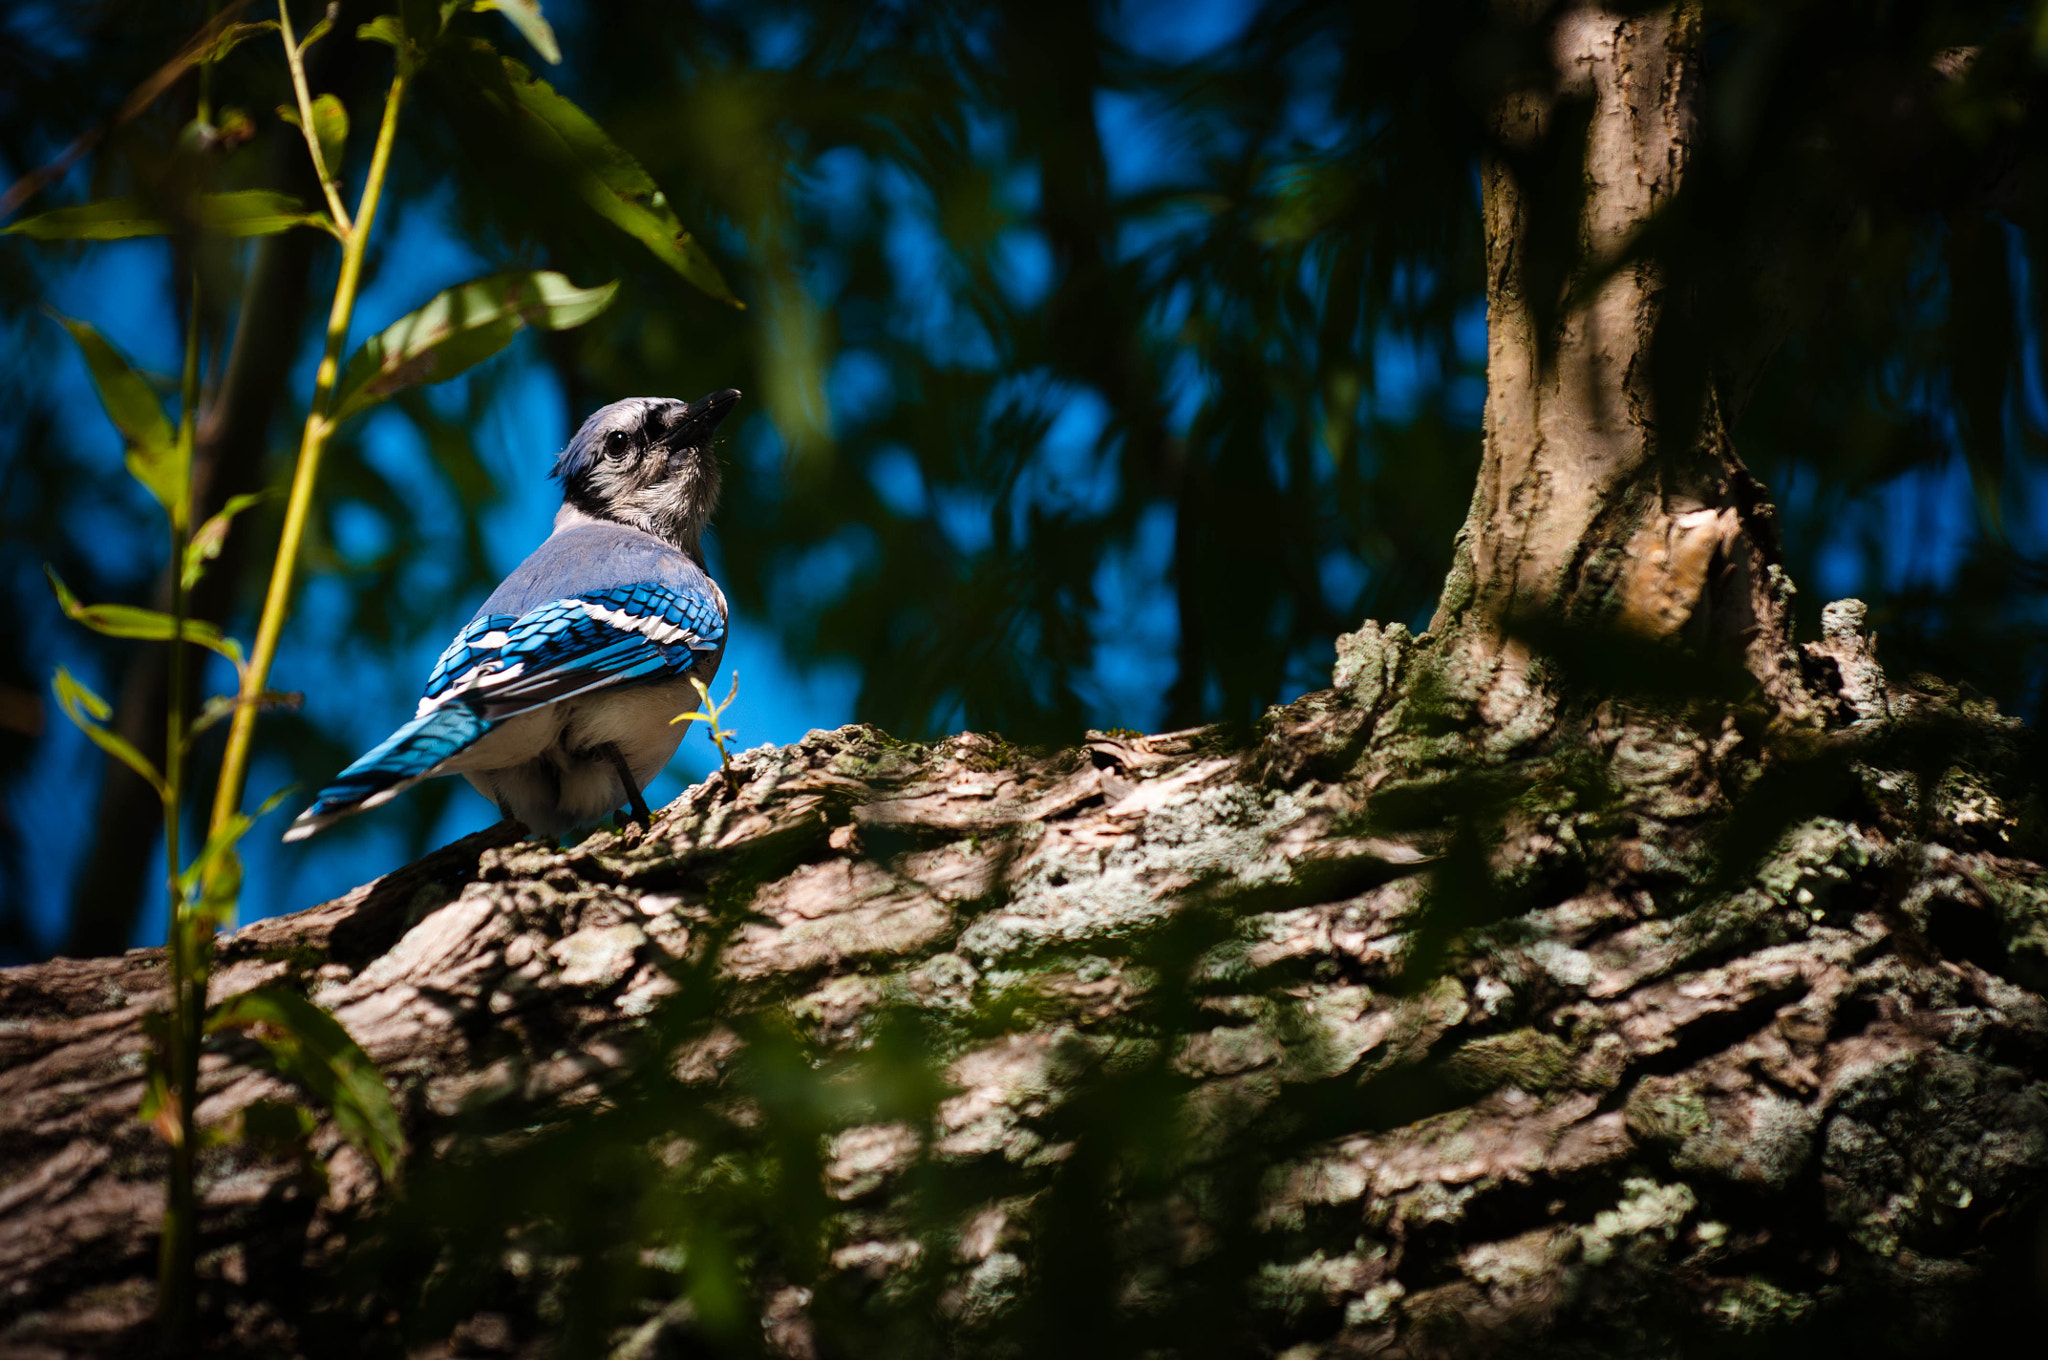 Photograph Blue Jay by OastinLive on 500px